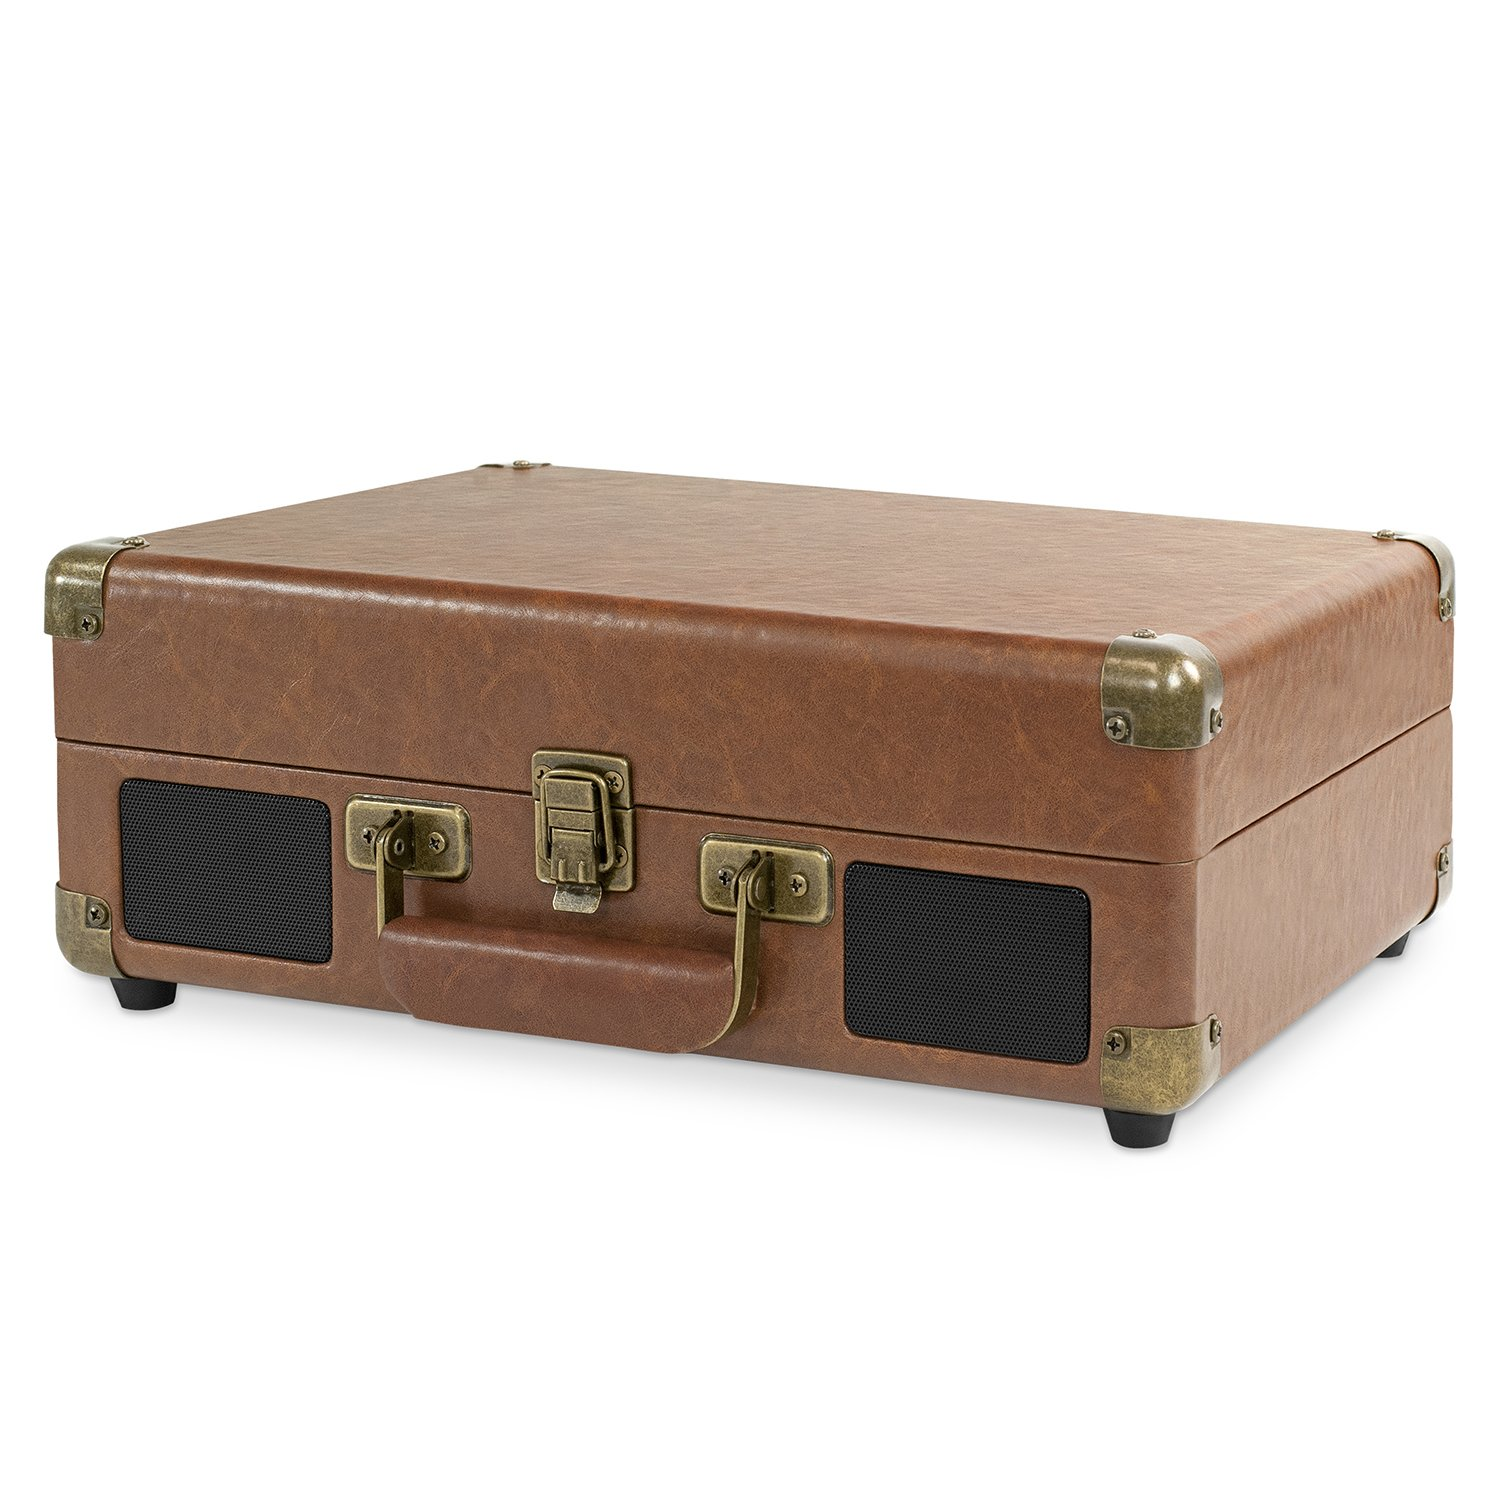 Victrola Bluetooth Suitcase Record Player 3-Speed Turntable by Victrola (Image #2)